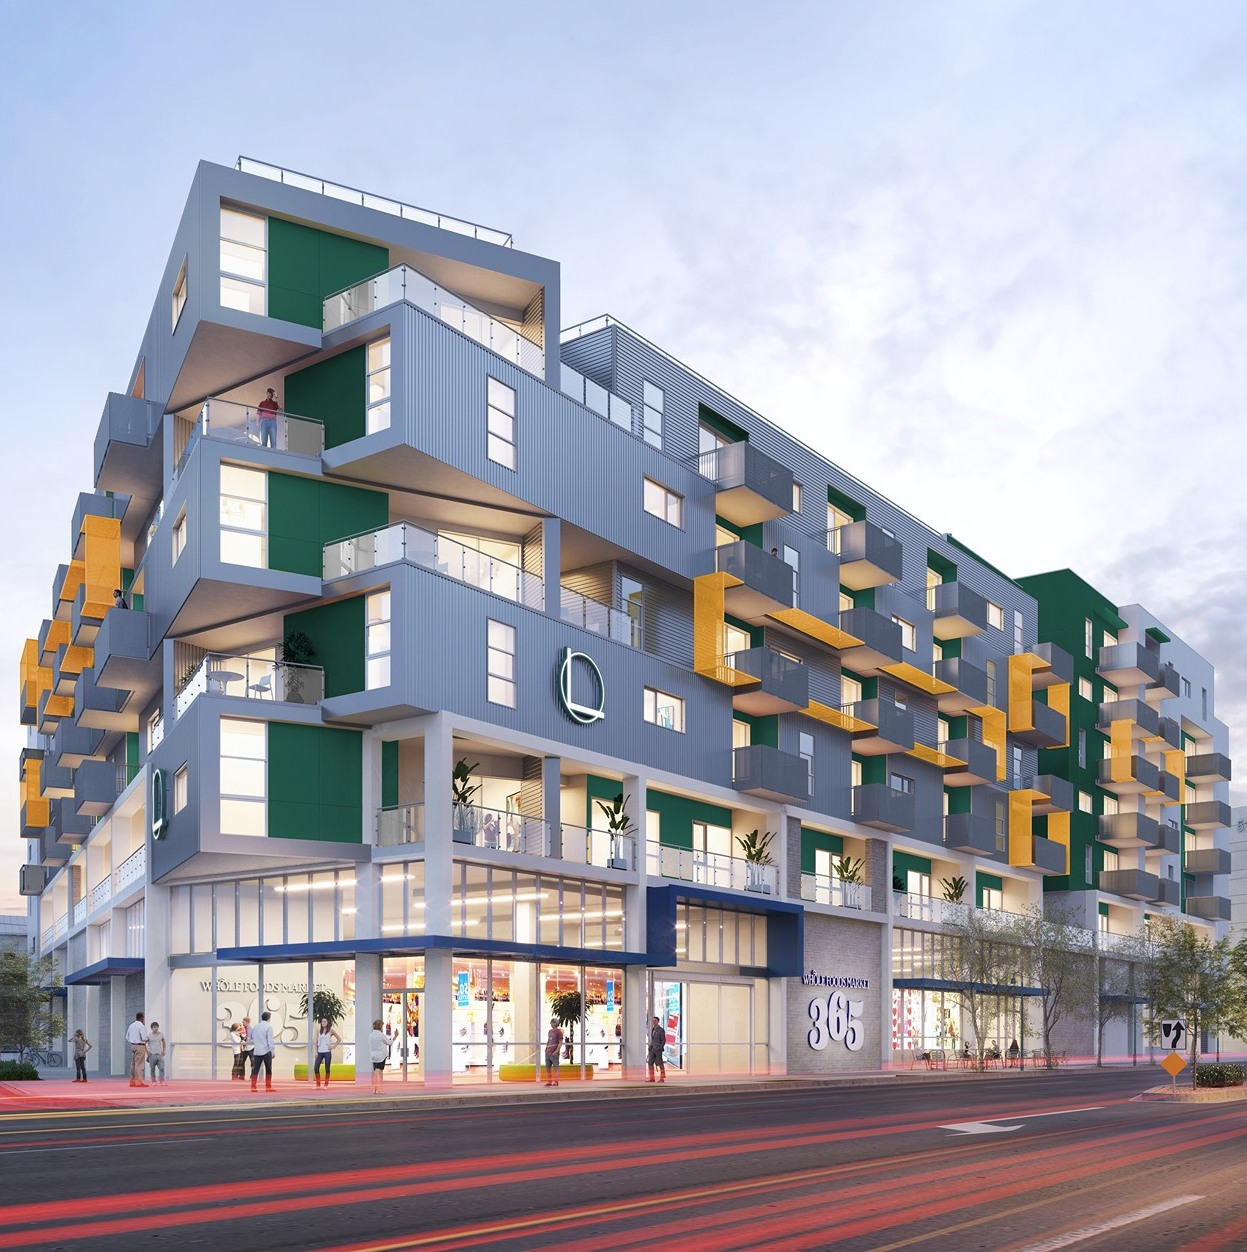 L + O NoHo Apartments - Whiole Foods Market